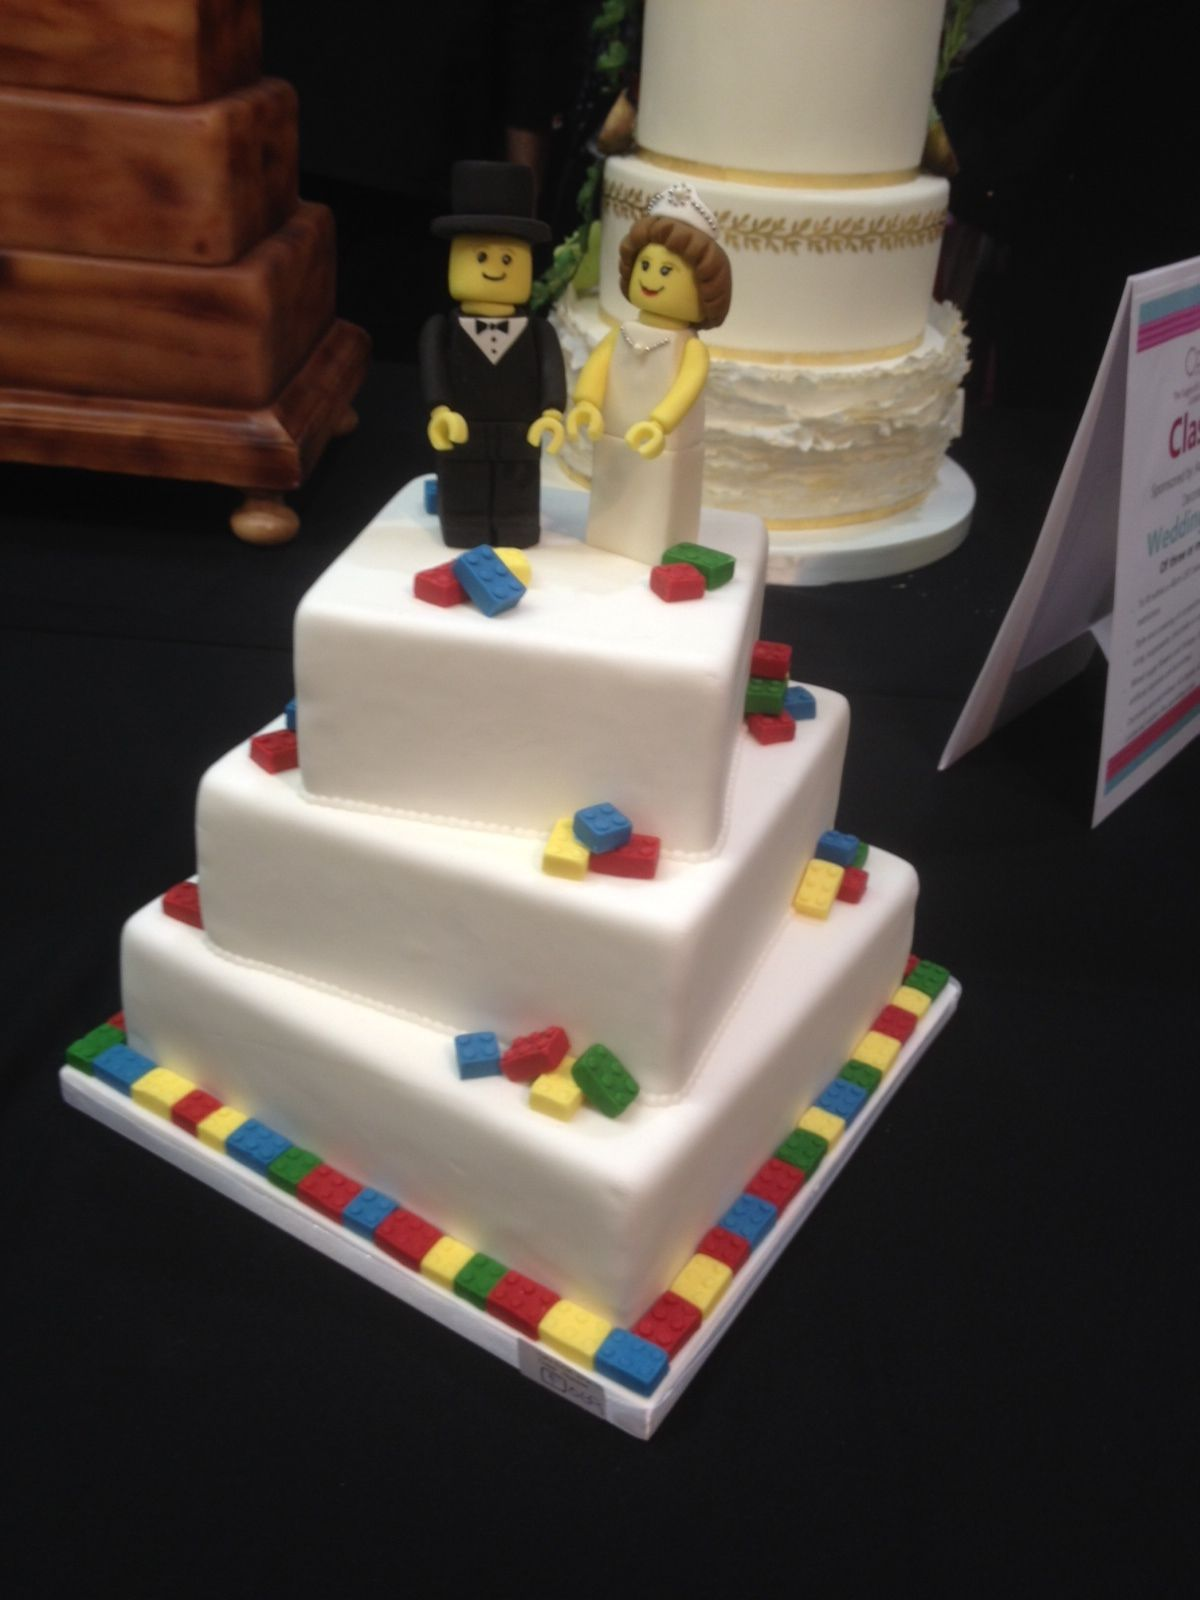 Lovely Lego Wedding Cake With Bride And Groom Cake Topper